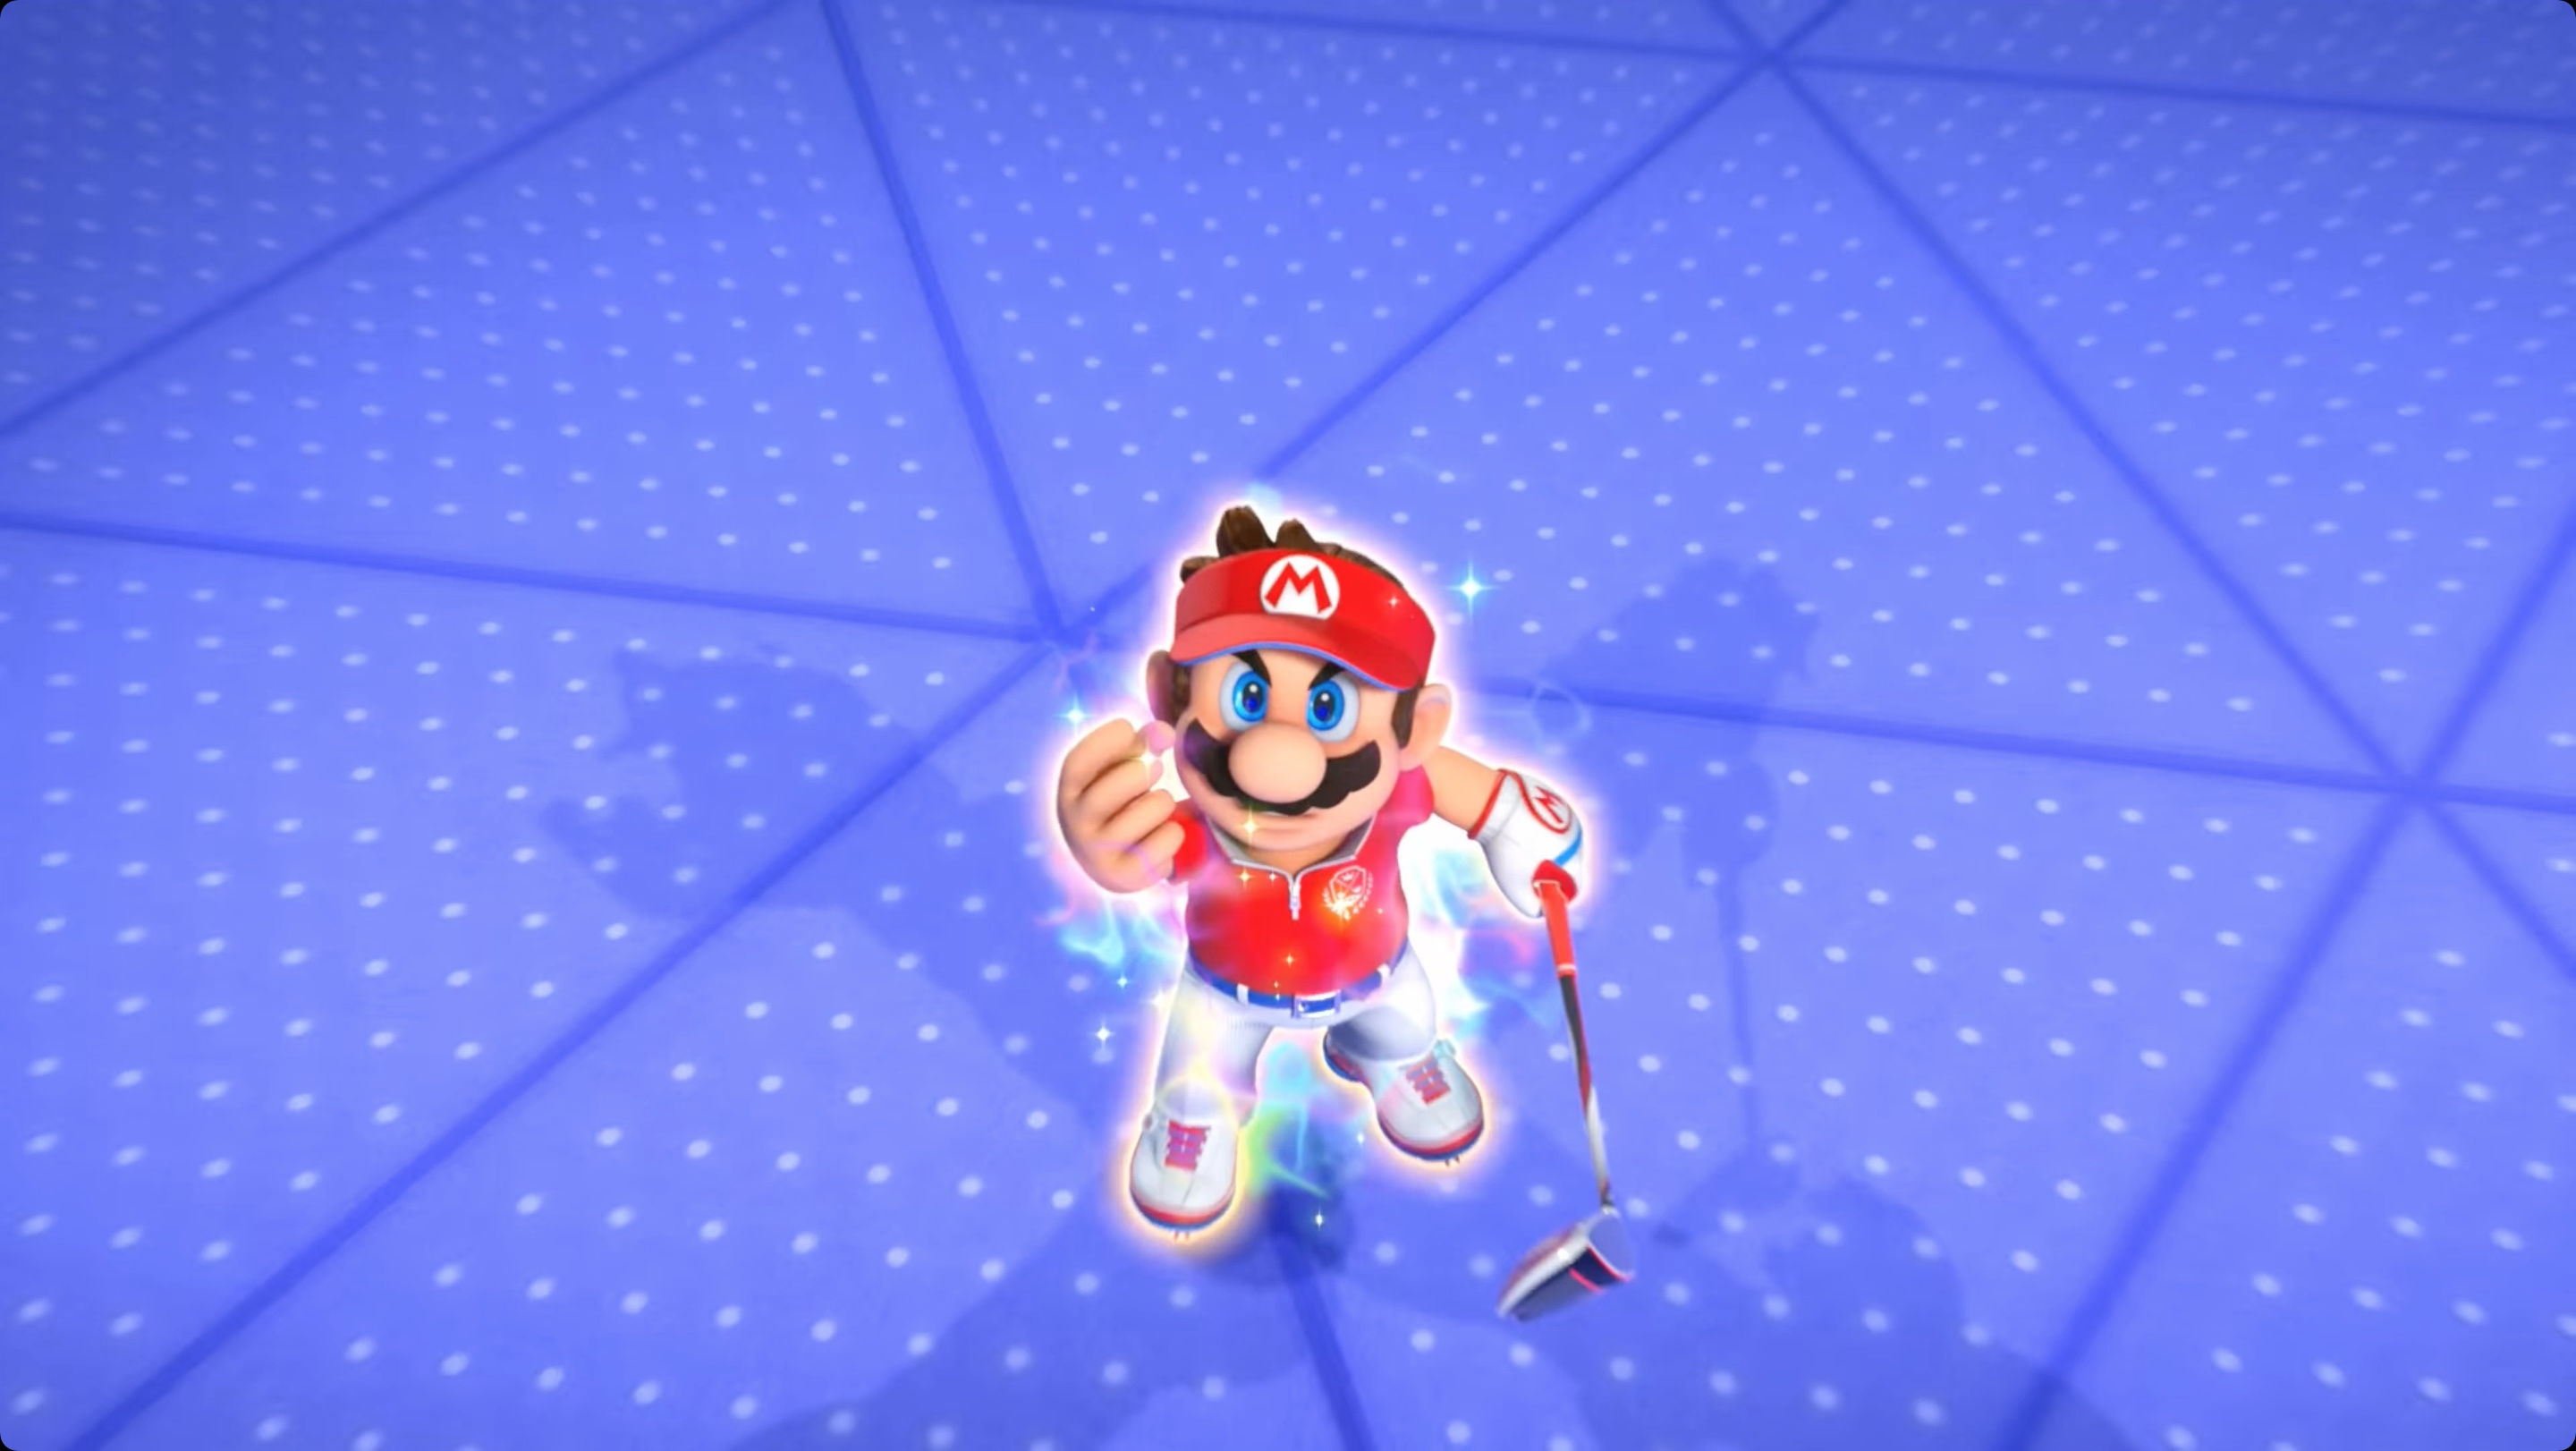 Mario Golf: Super Rush guides and tips